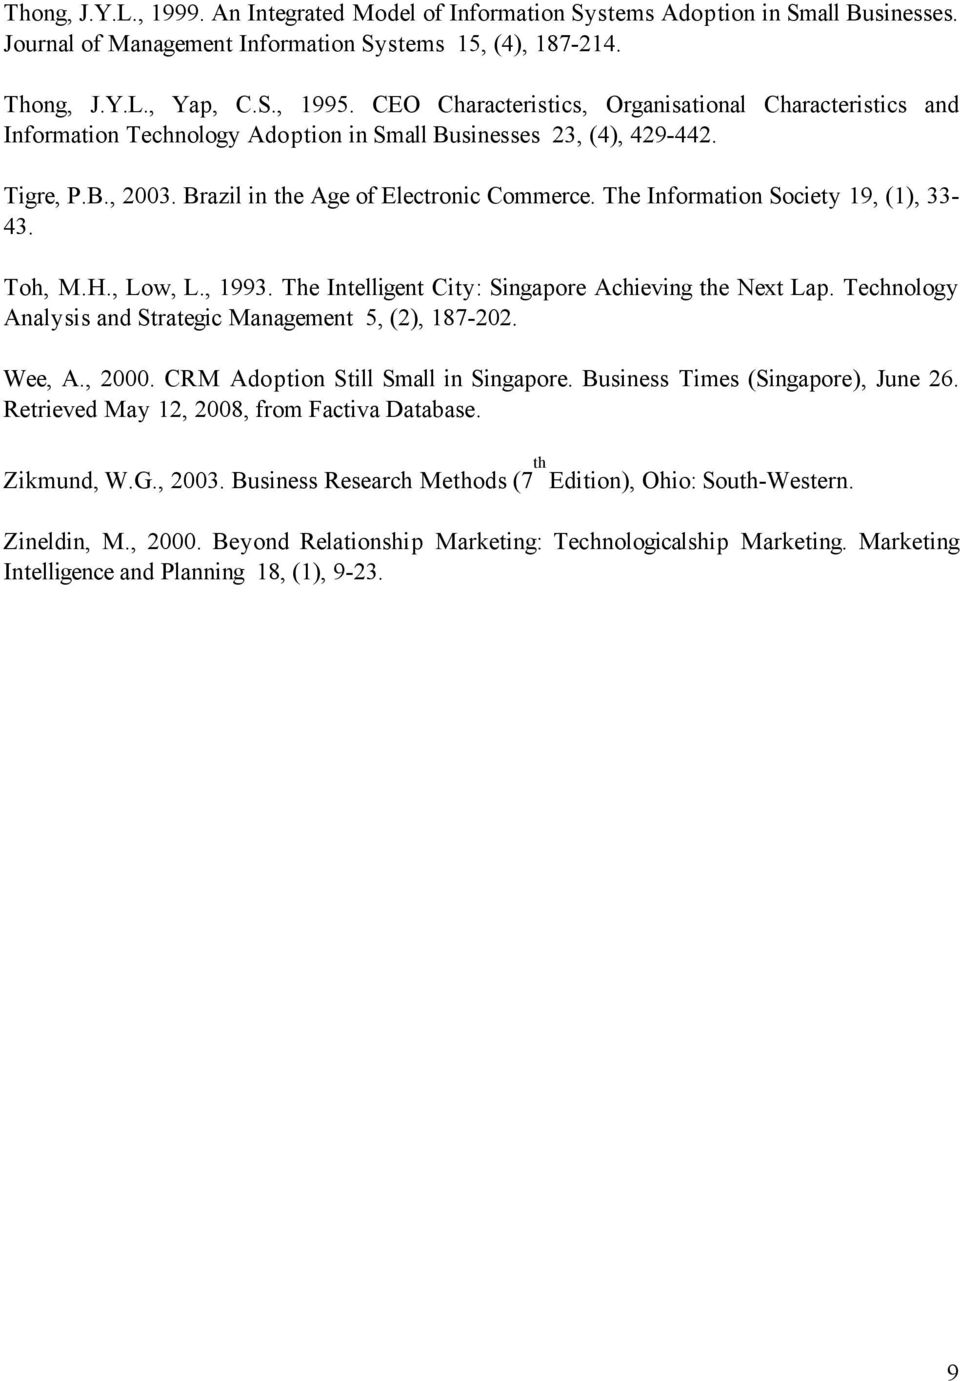 The Information Society 19, (1), 33-43. Toh, M.H., Low, L., 1993. The Intelligent City: Singapore Achieving the Next Lap. Technology Analysis and Strategic Management 5, (2), 187-202. Wee, A., 2000.